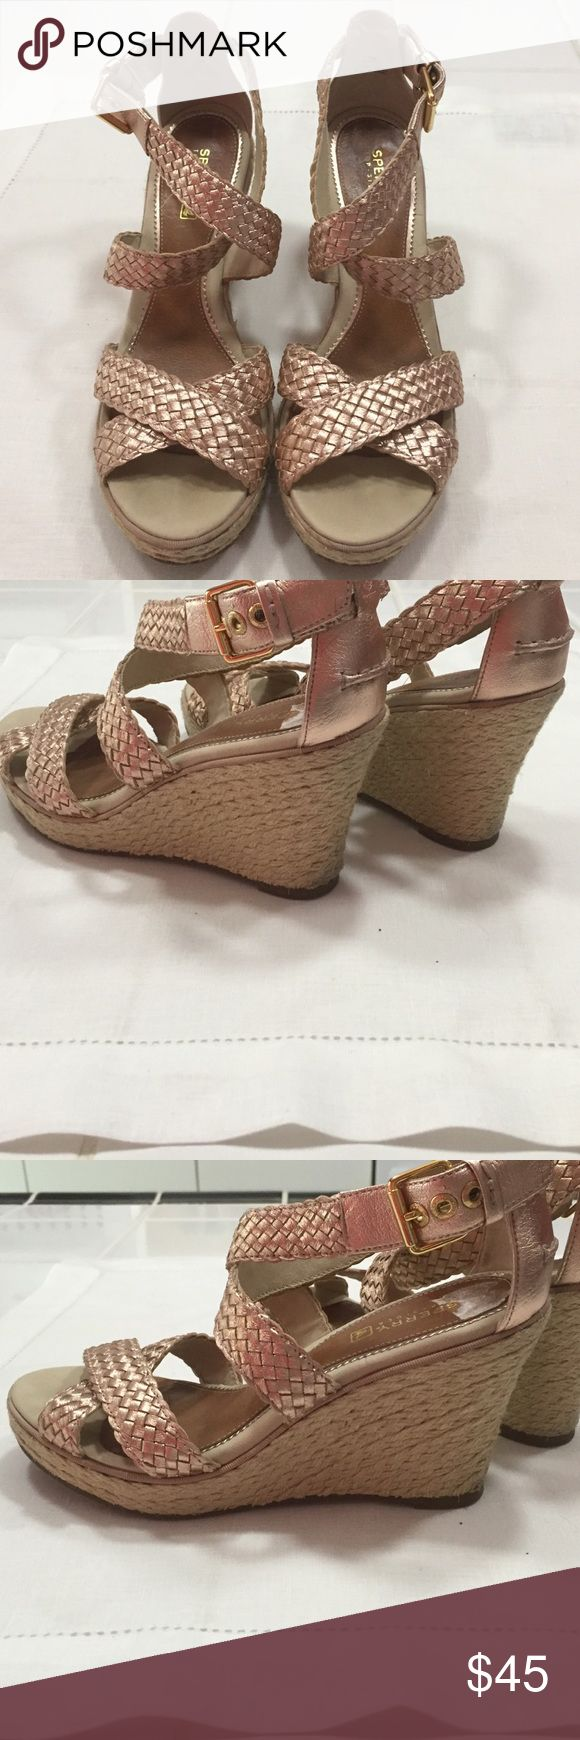 Sperry Rose Gold Wedge Cross Ankle Shoes Sperry Rose Gold Cross Ankle 3 1/2 inch Wedge Good Shape Sperry Top-Sider Shoes Wedges